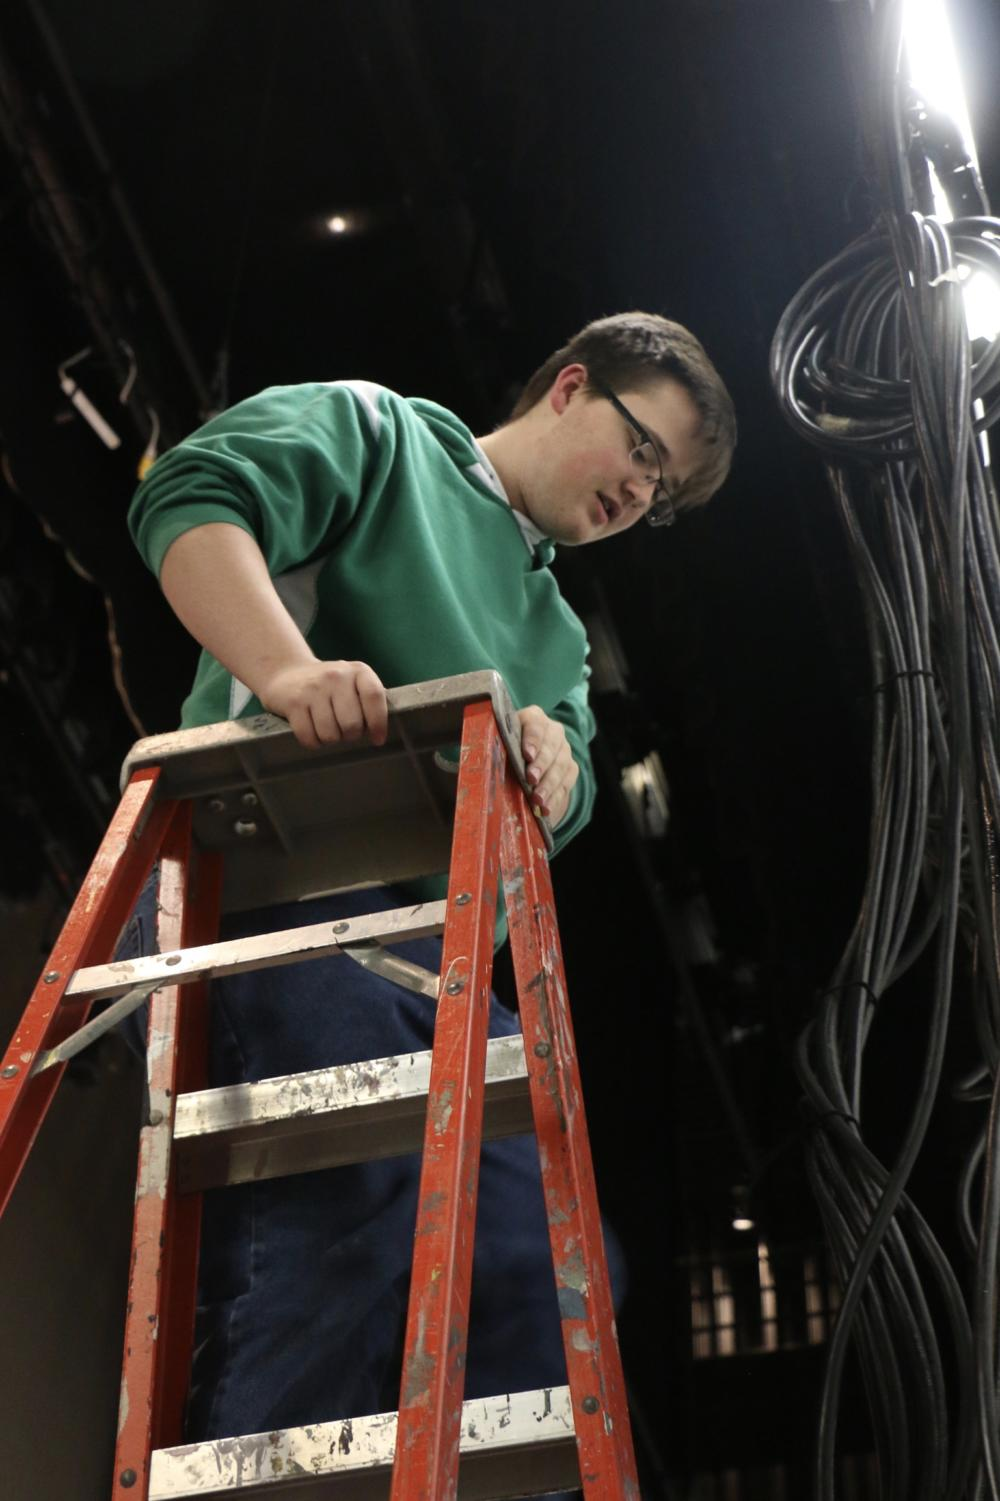 Heightened+Experience%3A%0ATech+theater+student+and+sophomore+Ben+Outland+works+on+cabling+lights+on+March+18+for+upcoming+musical+Bring+It+On+which+runs+May+9-11.+Outland+said%2C+%E2%80%9Ctech+theater+is+a+really+fun+time.+After+school+you+get+to+hang+out+with+some+of+your+friends+and+you+just+get+to+do+cool+stuff%2C+like+hanging+up+lights%2C+wiring+things%2C+building+things%2C+and+all+that+kinda+stuff.%E2%80%9D